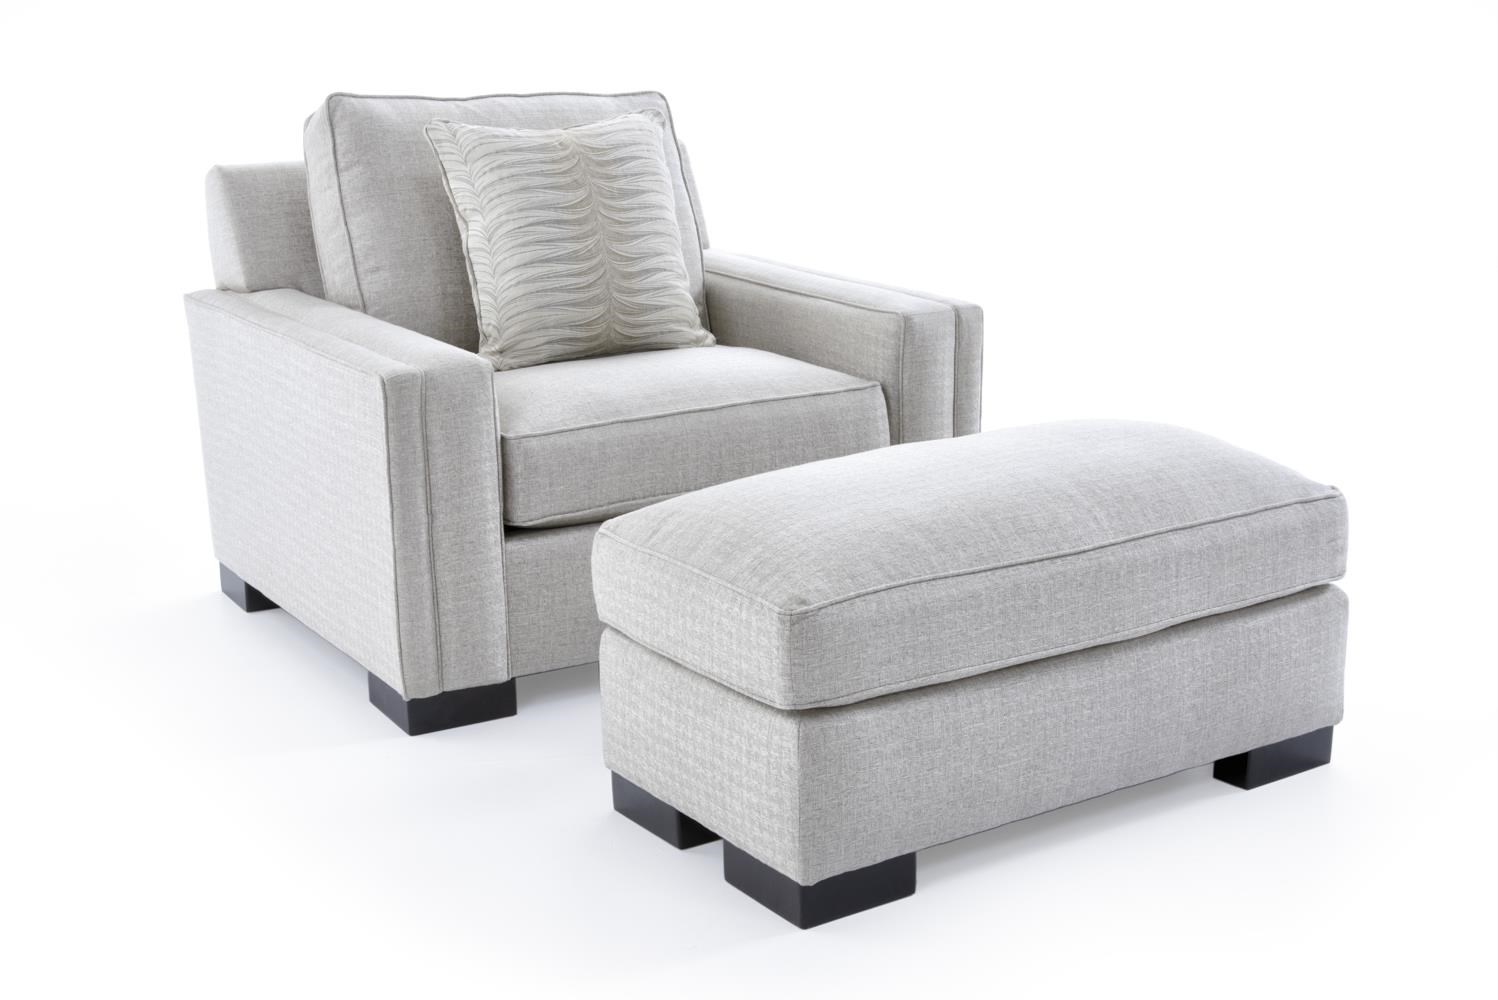 Broyhill Furniture Rocco Chair & 1/2 and Ottoman - Item Number: 4280-0+4280-5 4697-92